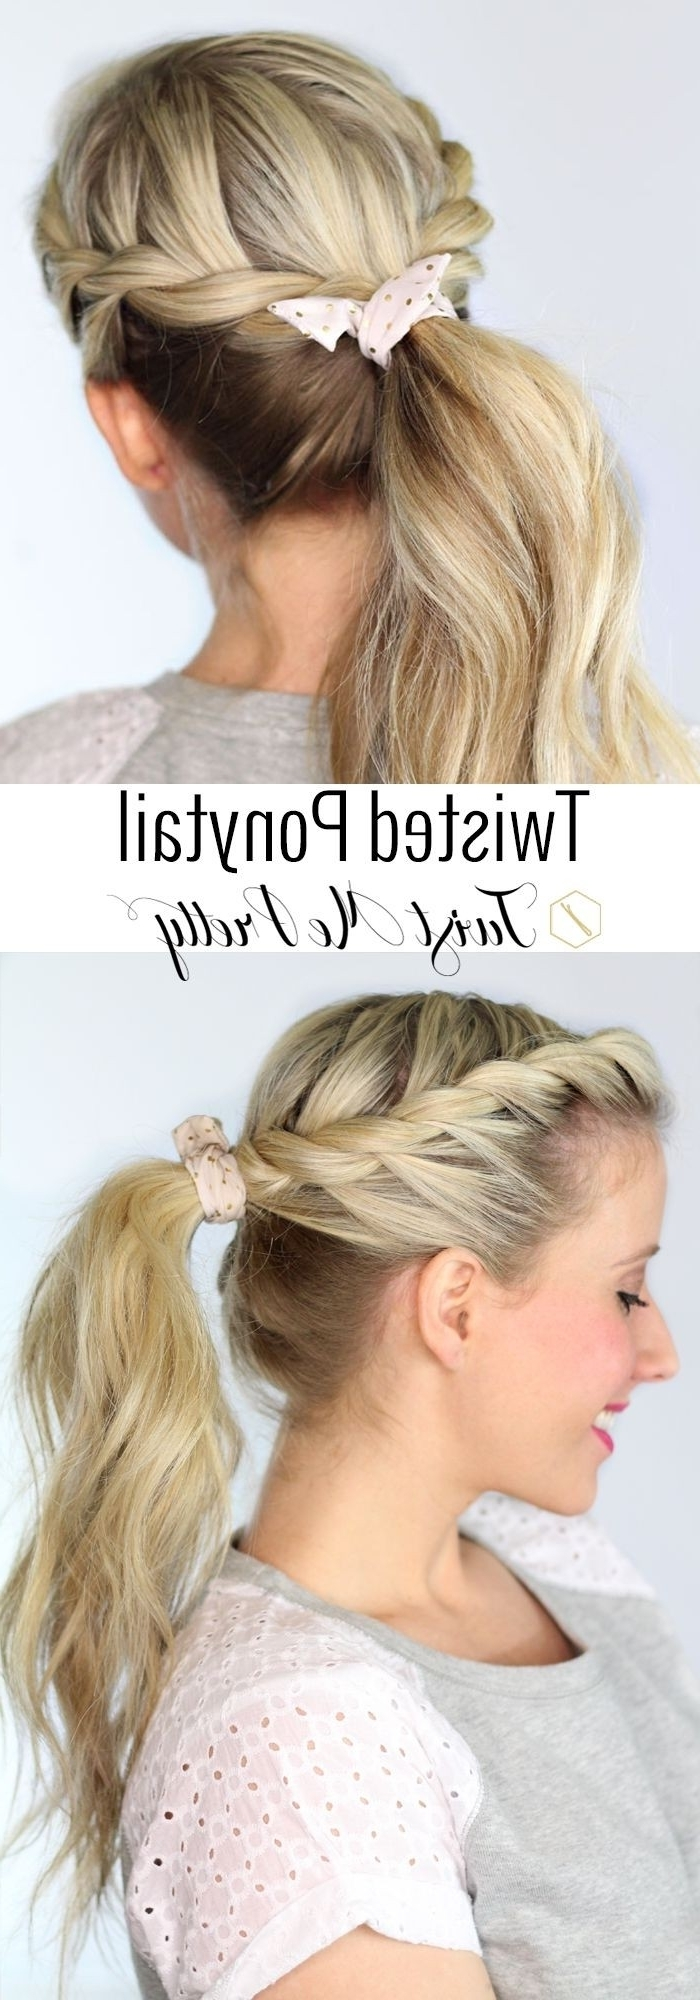 10 Cute Ponytail Ideas: Summer And Fall Hairstyles For Long Hair Pertaining To Preferred High Ponytail Hairstyles (View 18 of 20)